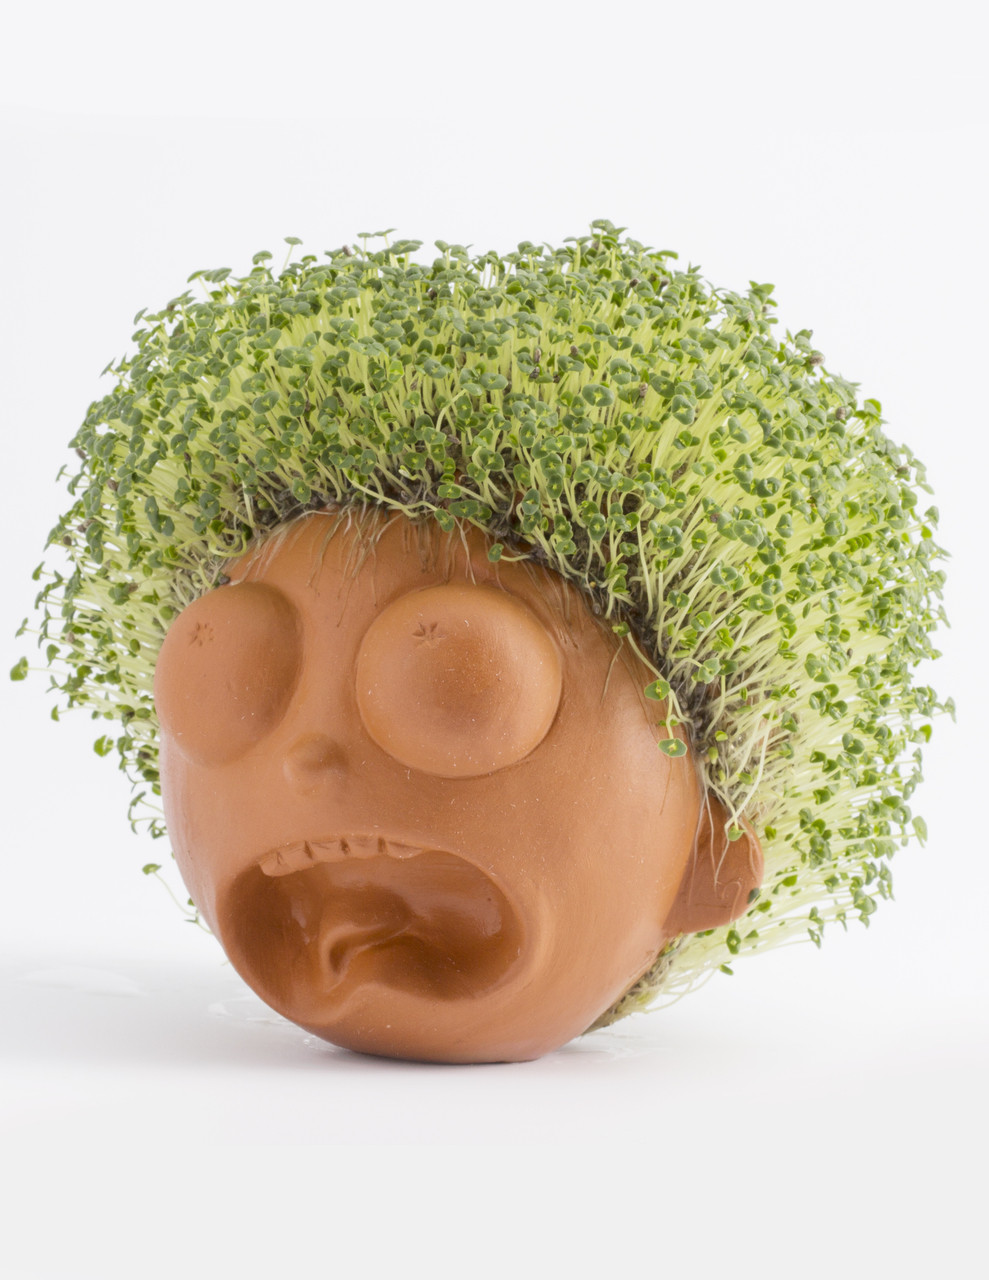 Chia Pet Images : images, Morty